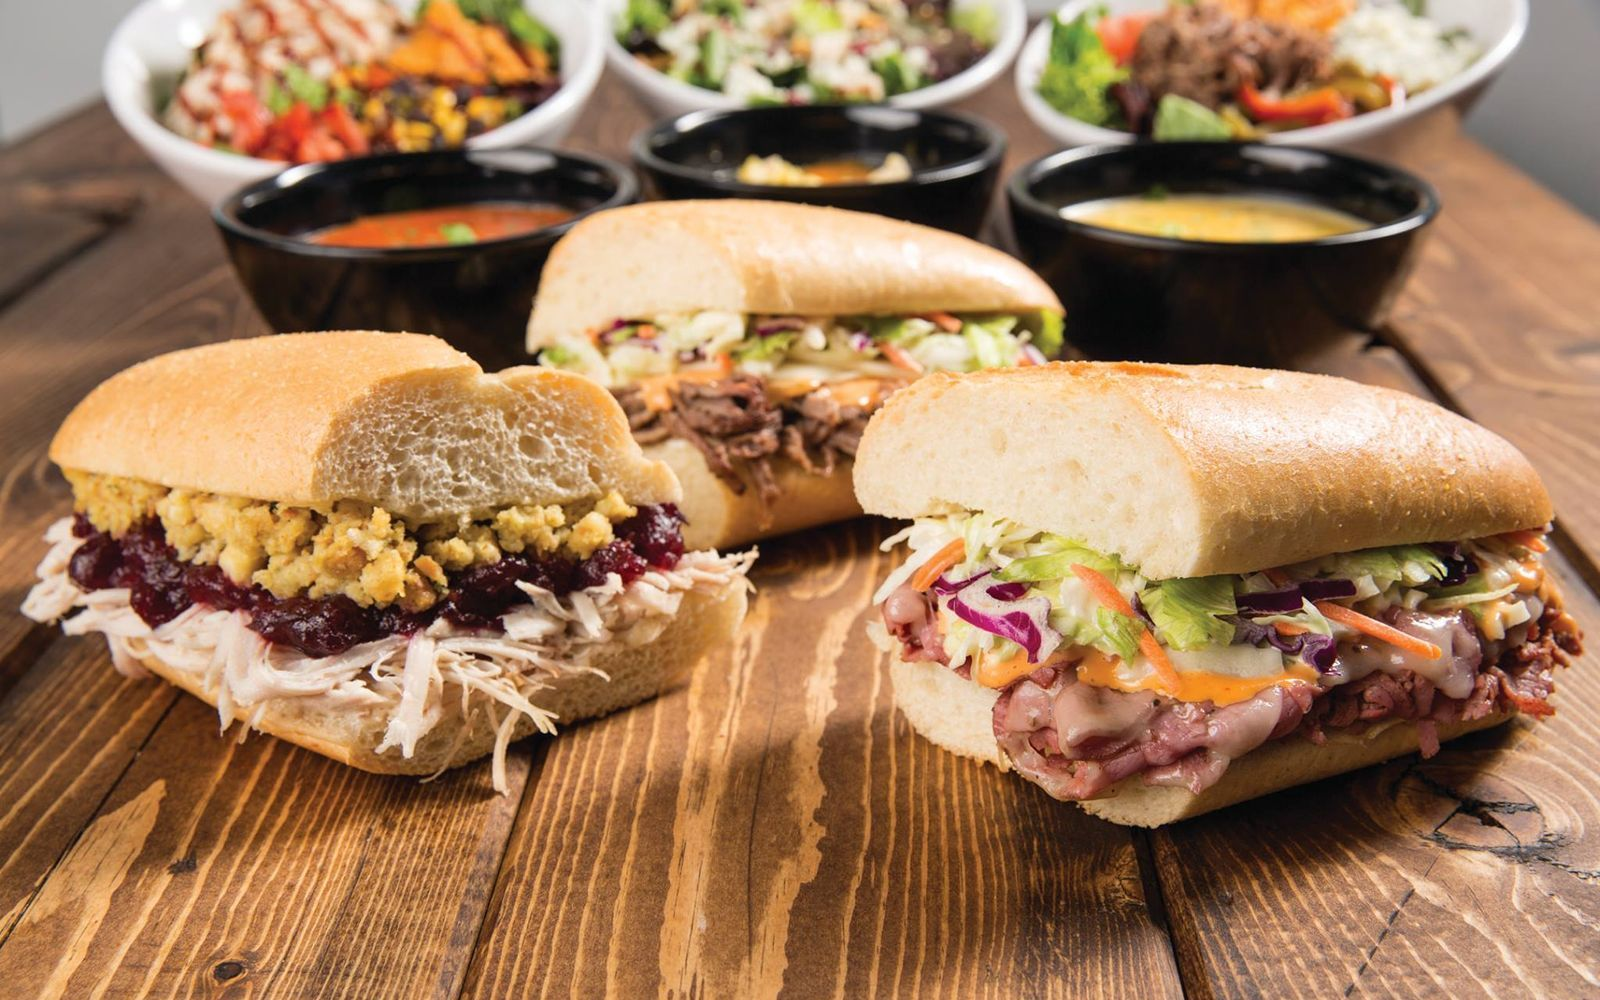 Capriotti's Sandwich Shop Continues Steady Growth in First Half of 2019; Signs Deals to Expand Brand to All Four Corners of U.S.